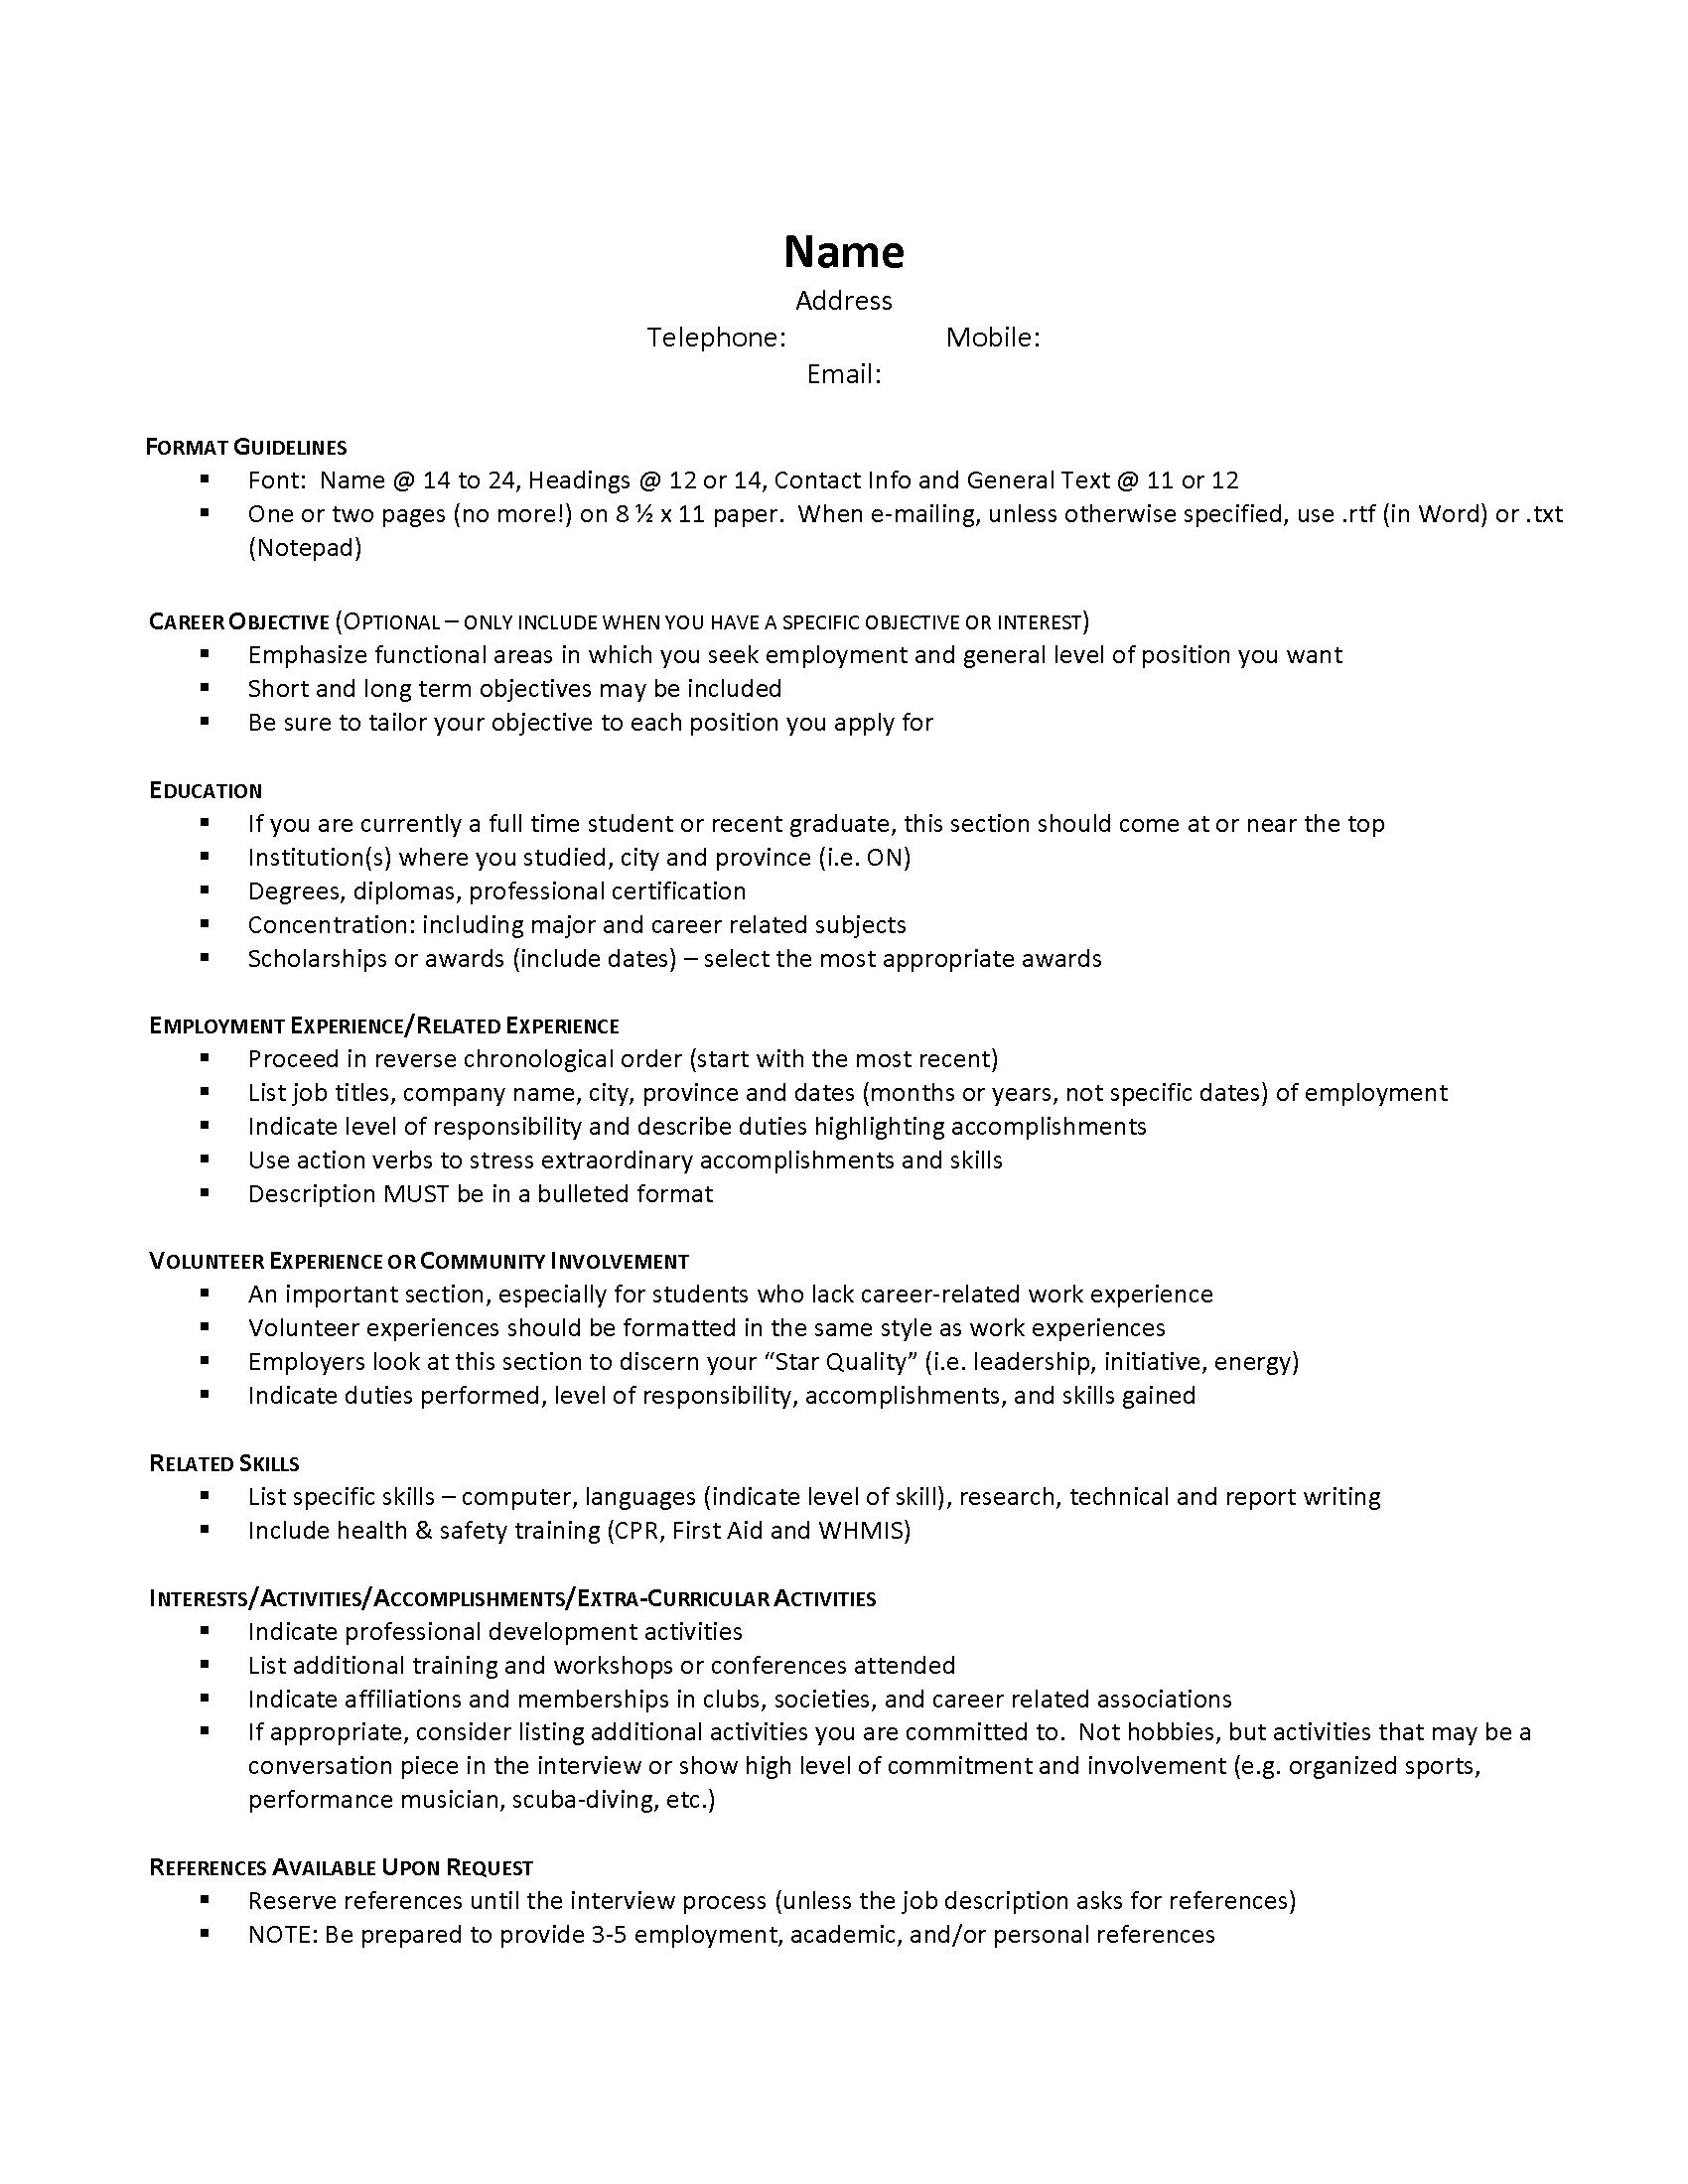 Team Leader Position Resume Ams Cobol Resume Phd Thesis Image